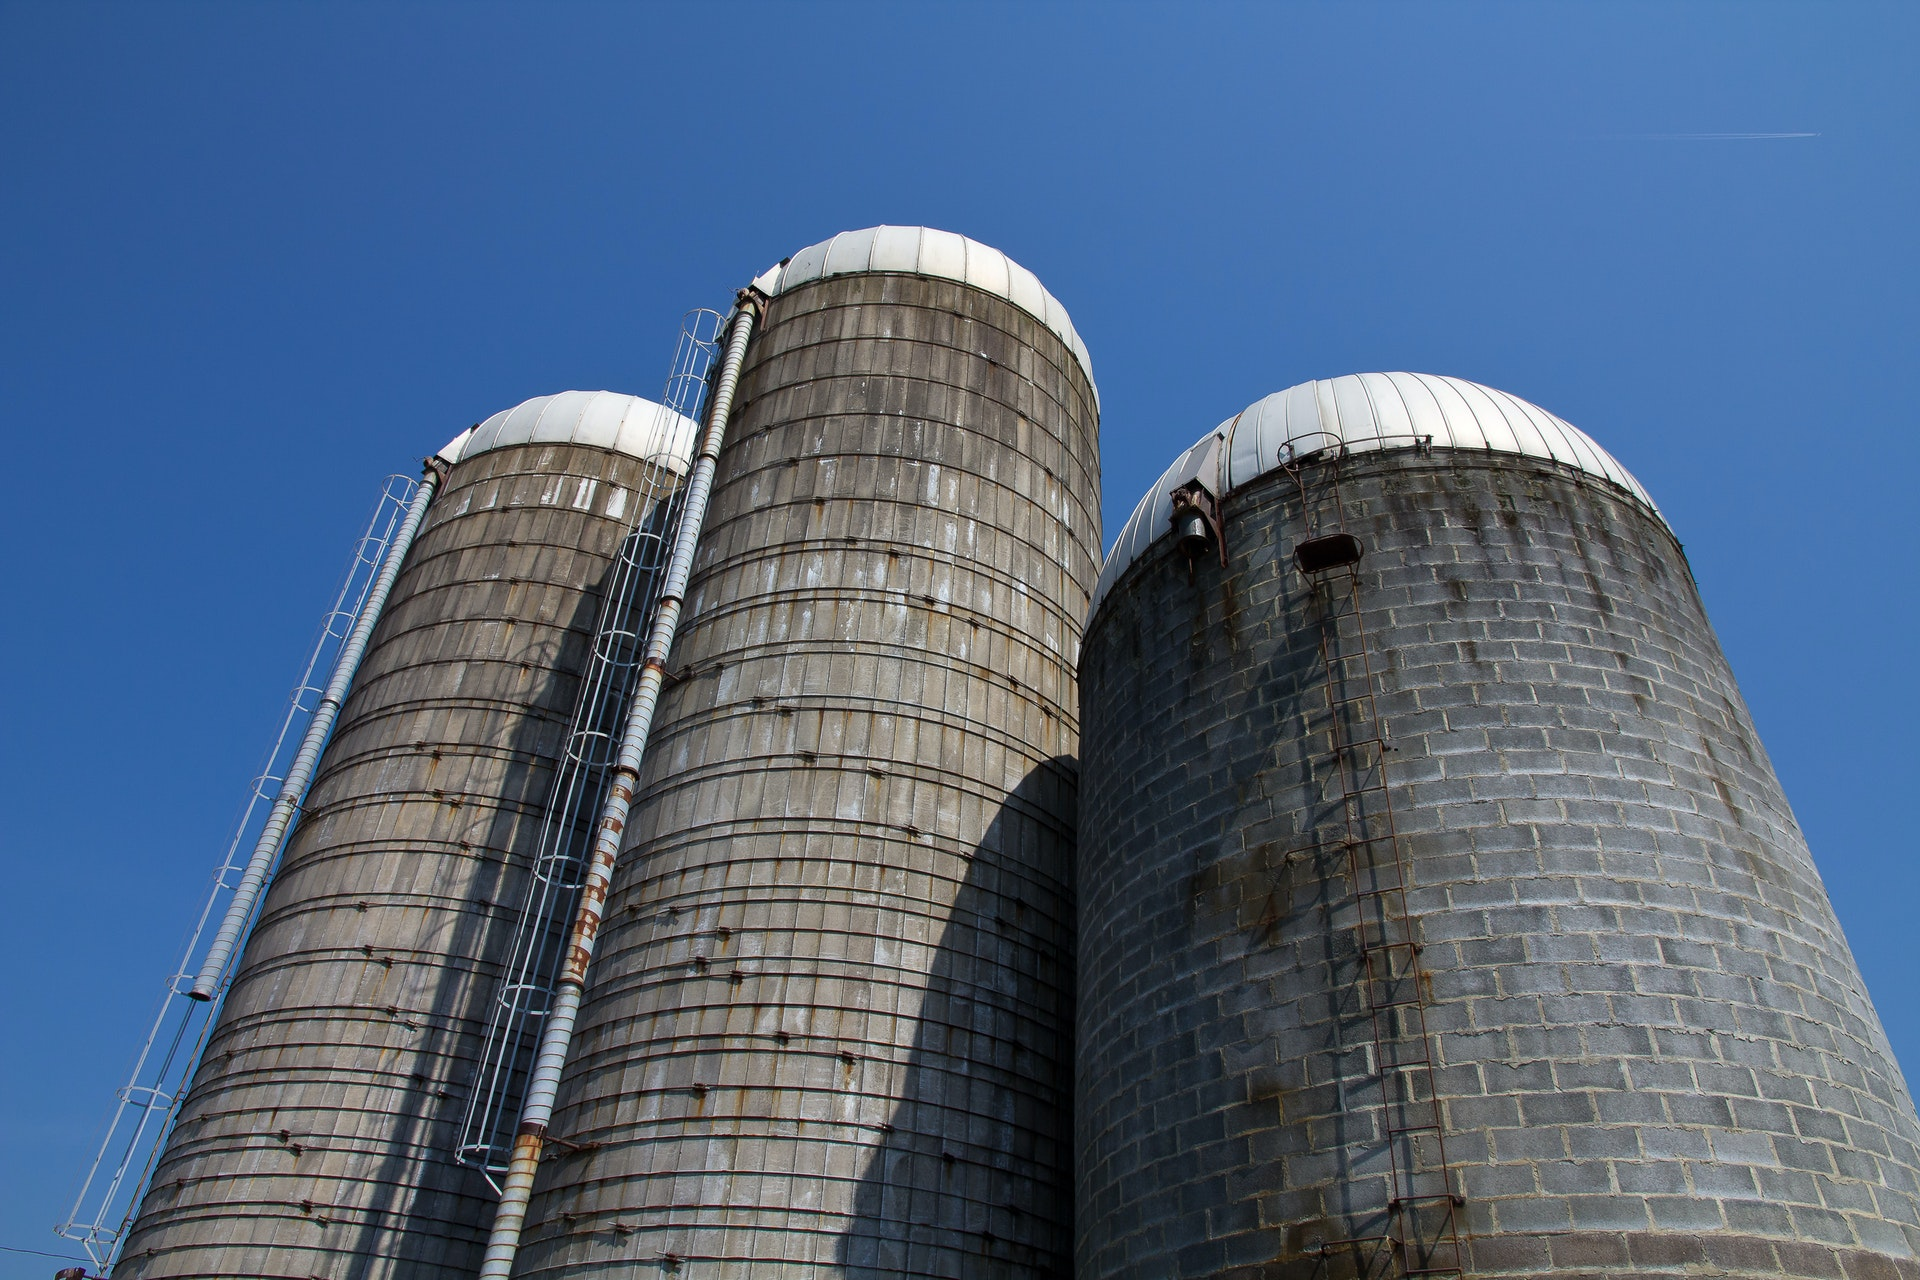 silos: good for storing grain, not good for account based marketing